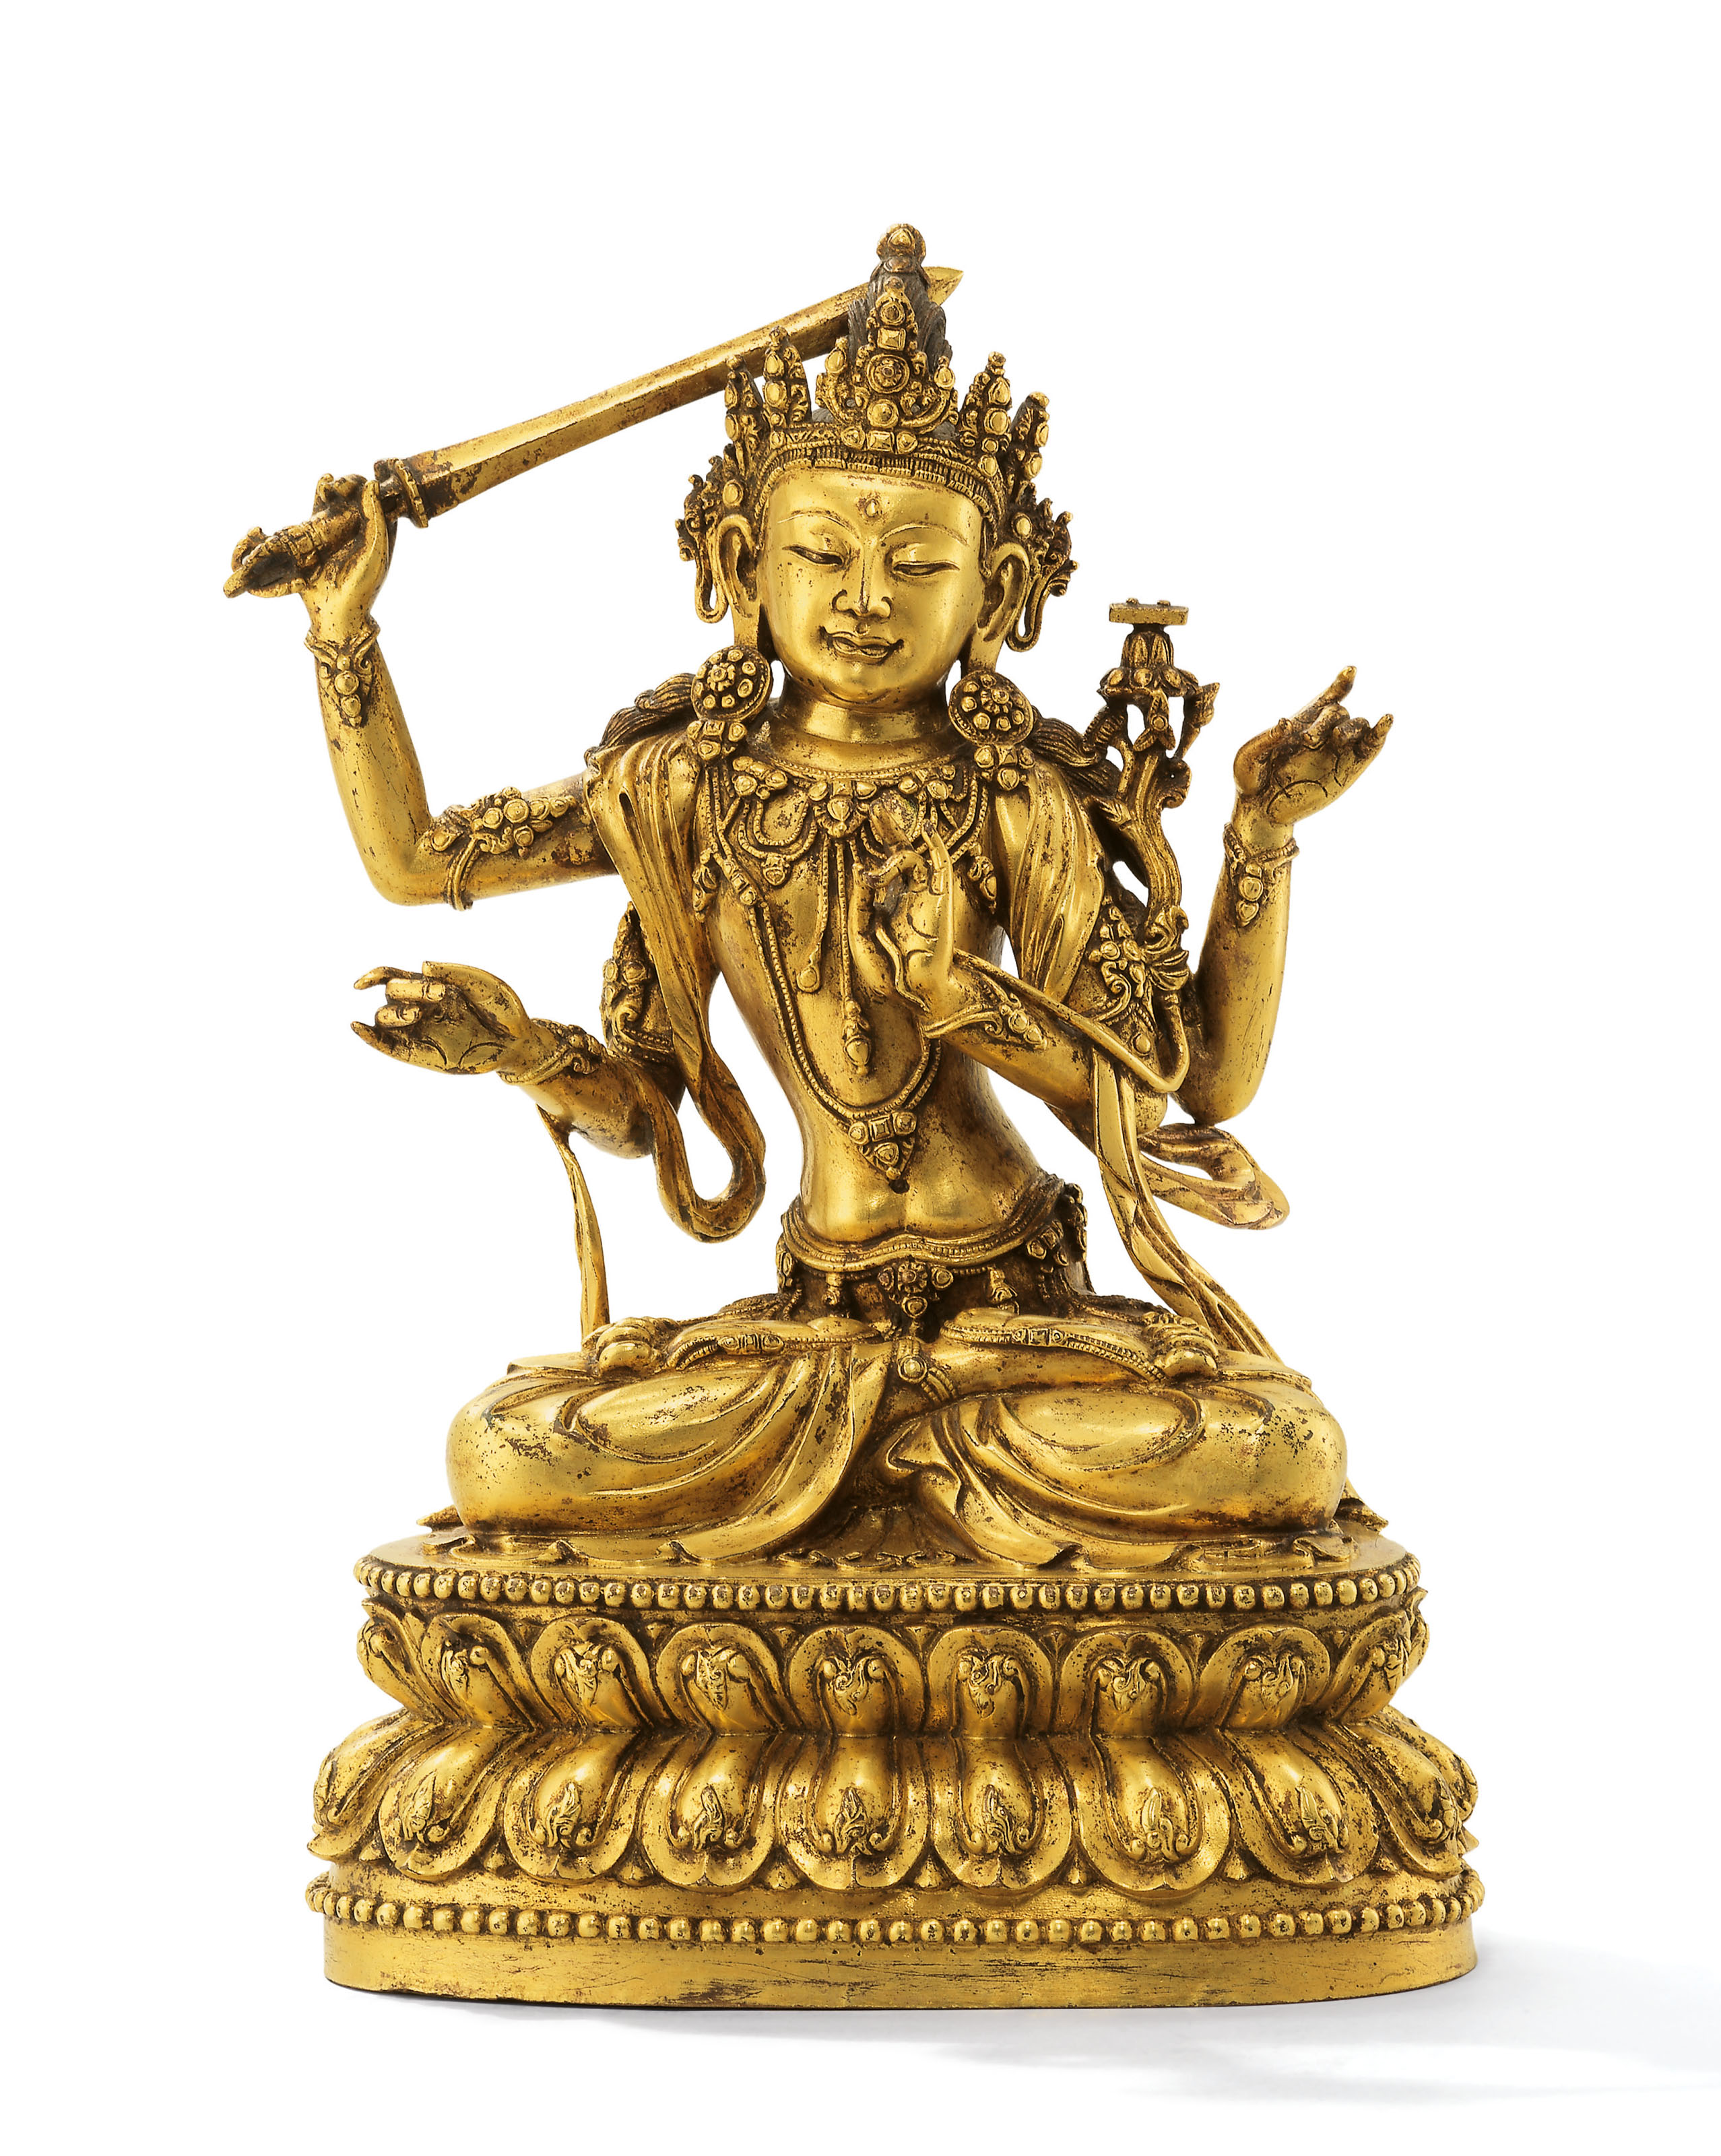 A VERY RARE IMPERIAL EARLY MING LARGE GILT-BRONZE FIGURE OF ...